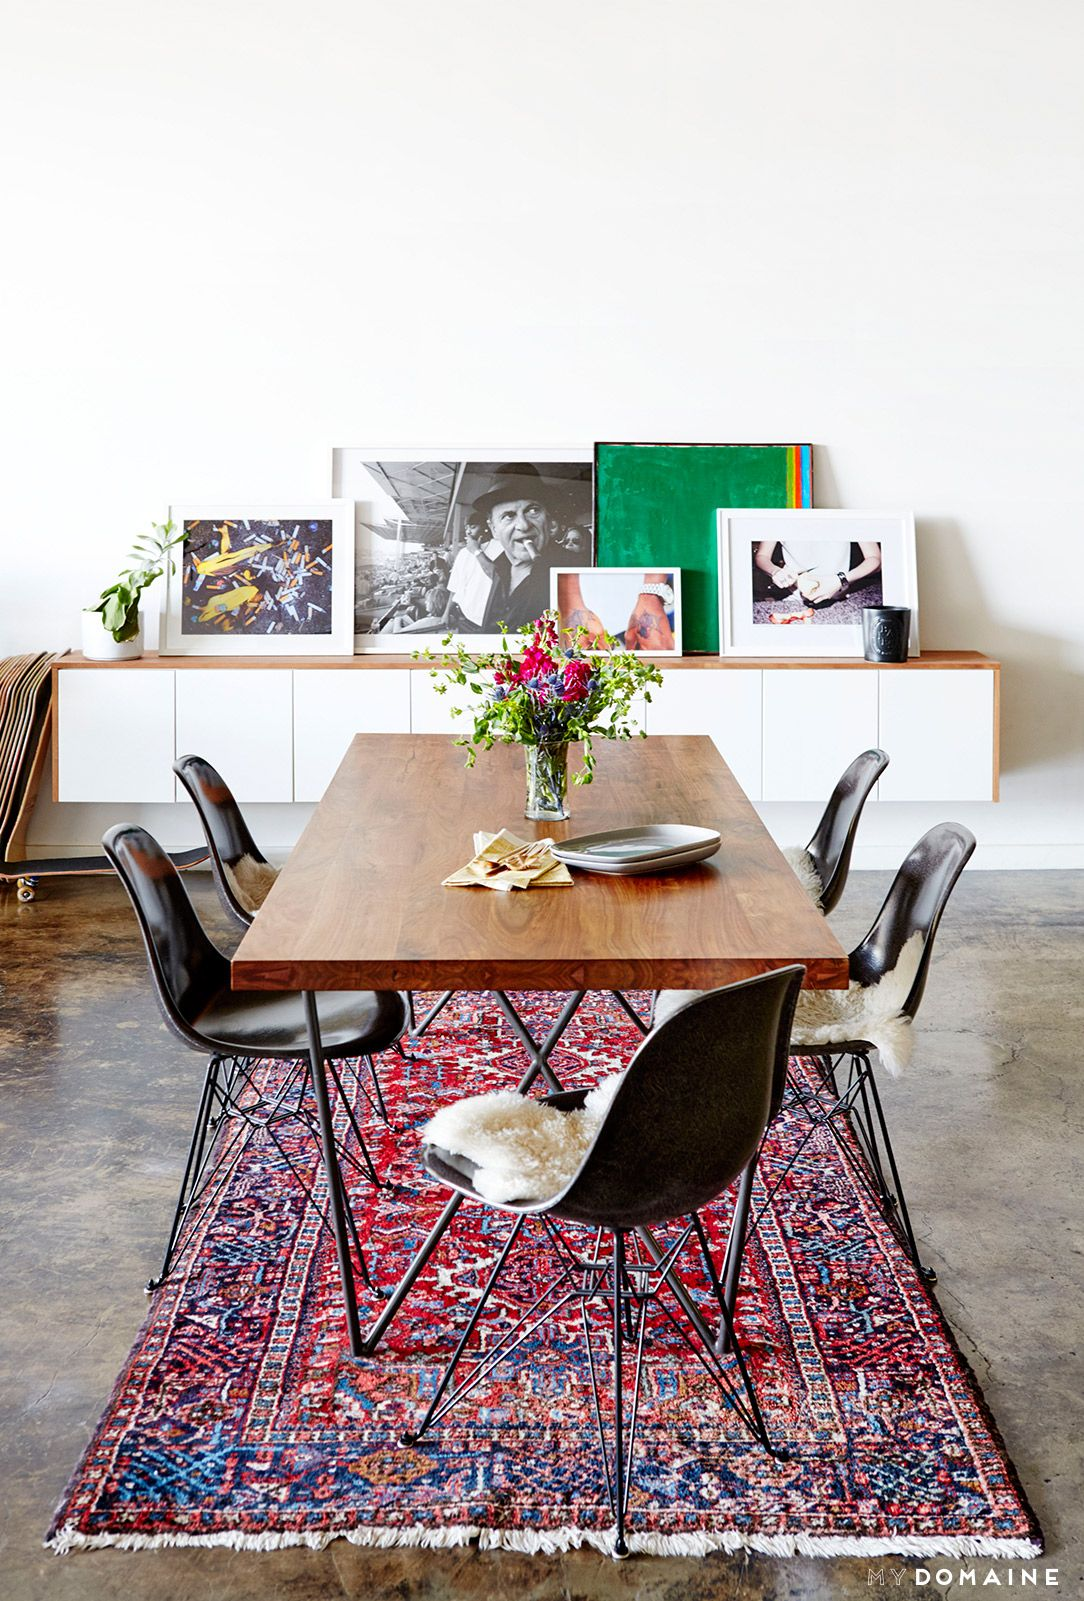 An Industrial And Modern Dining Space With Leaning Artwork, Persian Rug,  And Wood Dining